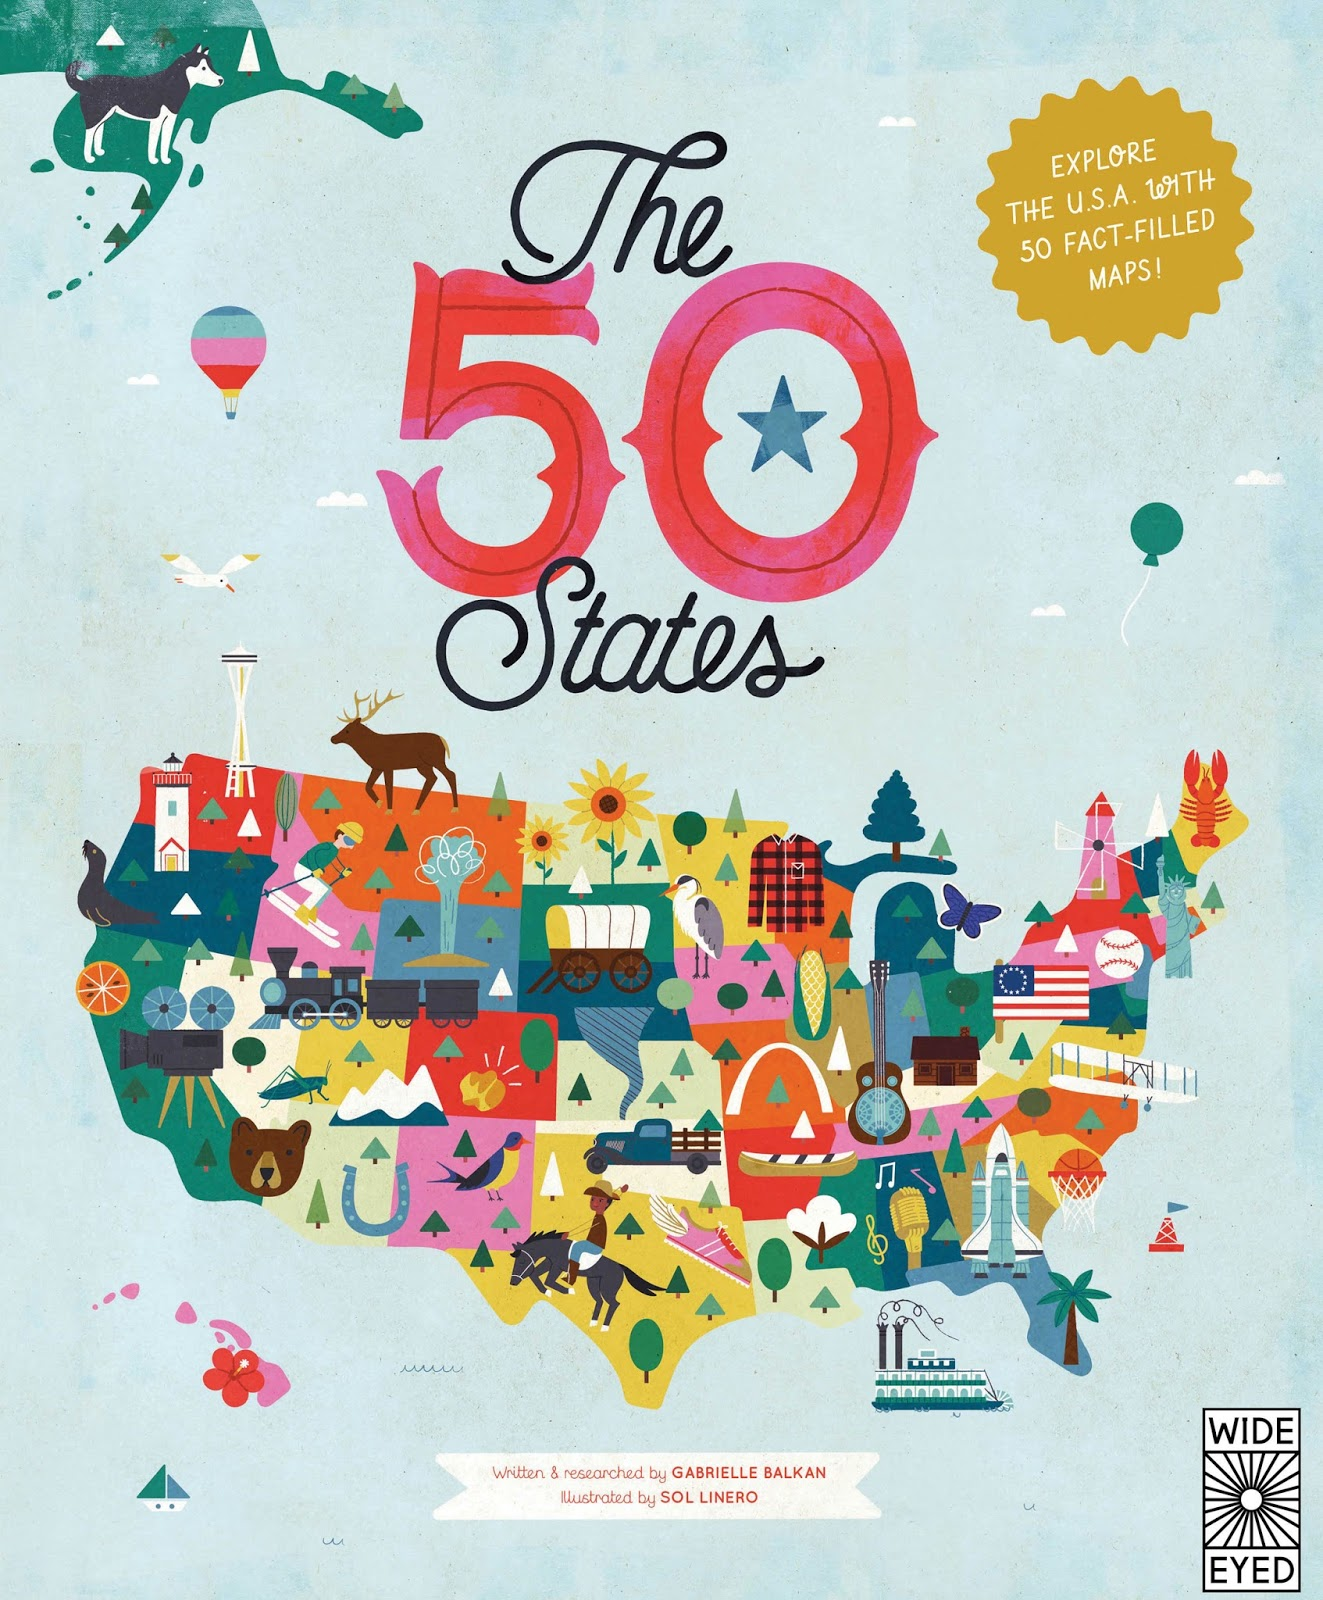 Boys And Literacy Blog Tour The States Explore The USA - Tour of the states